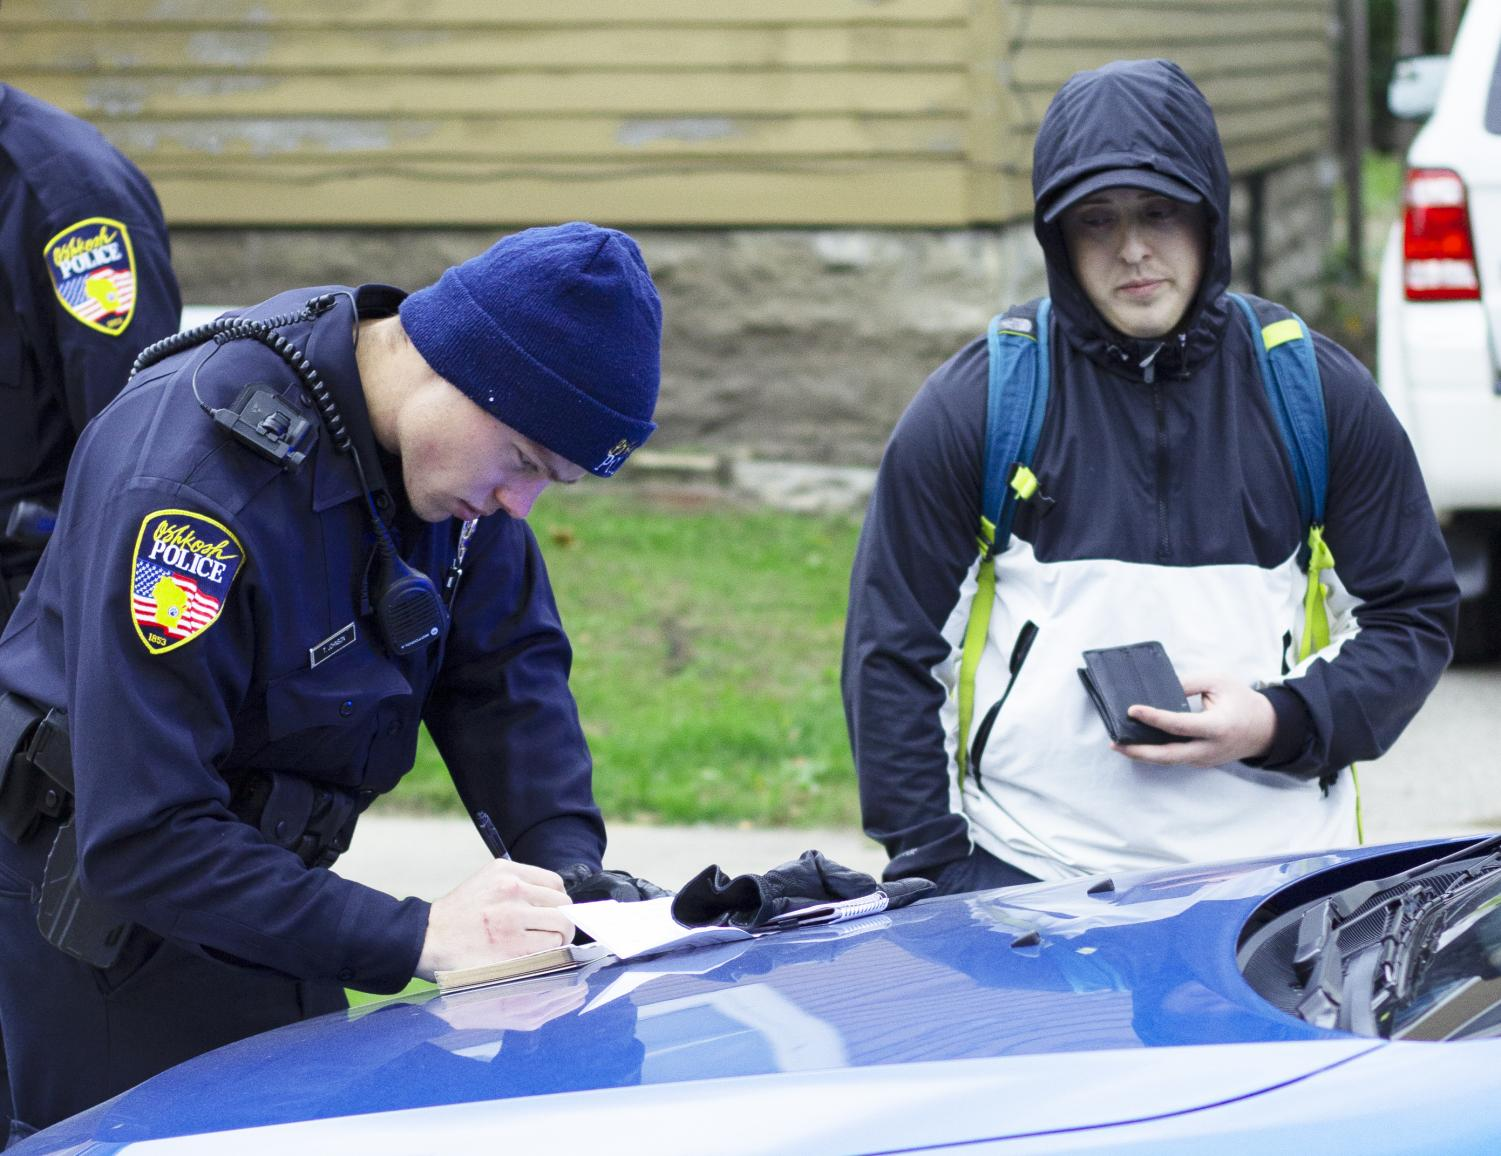 A police officer writes an open-intoxicant ticket. /